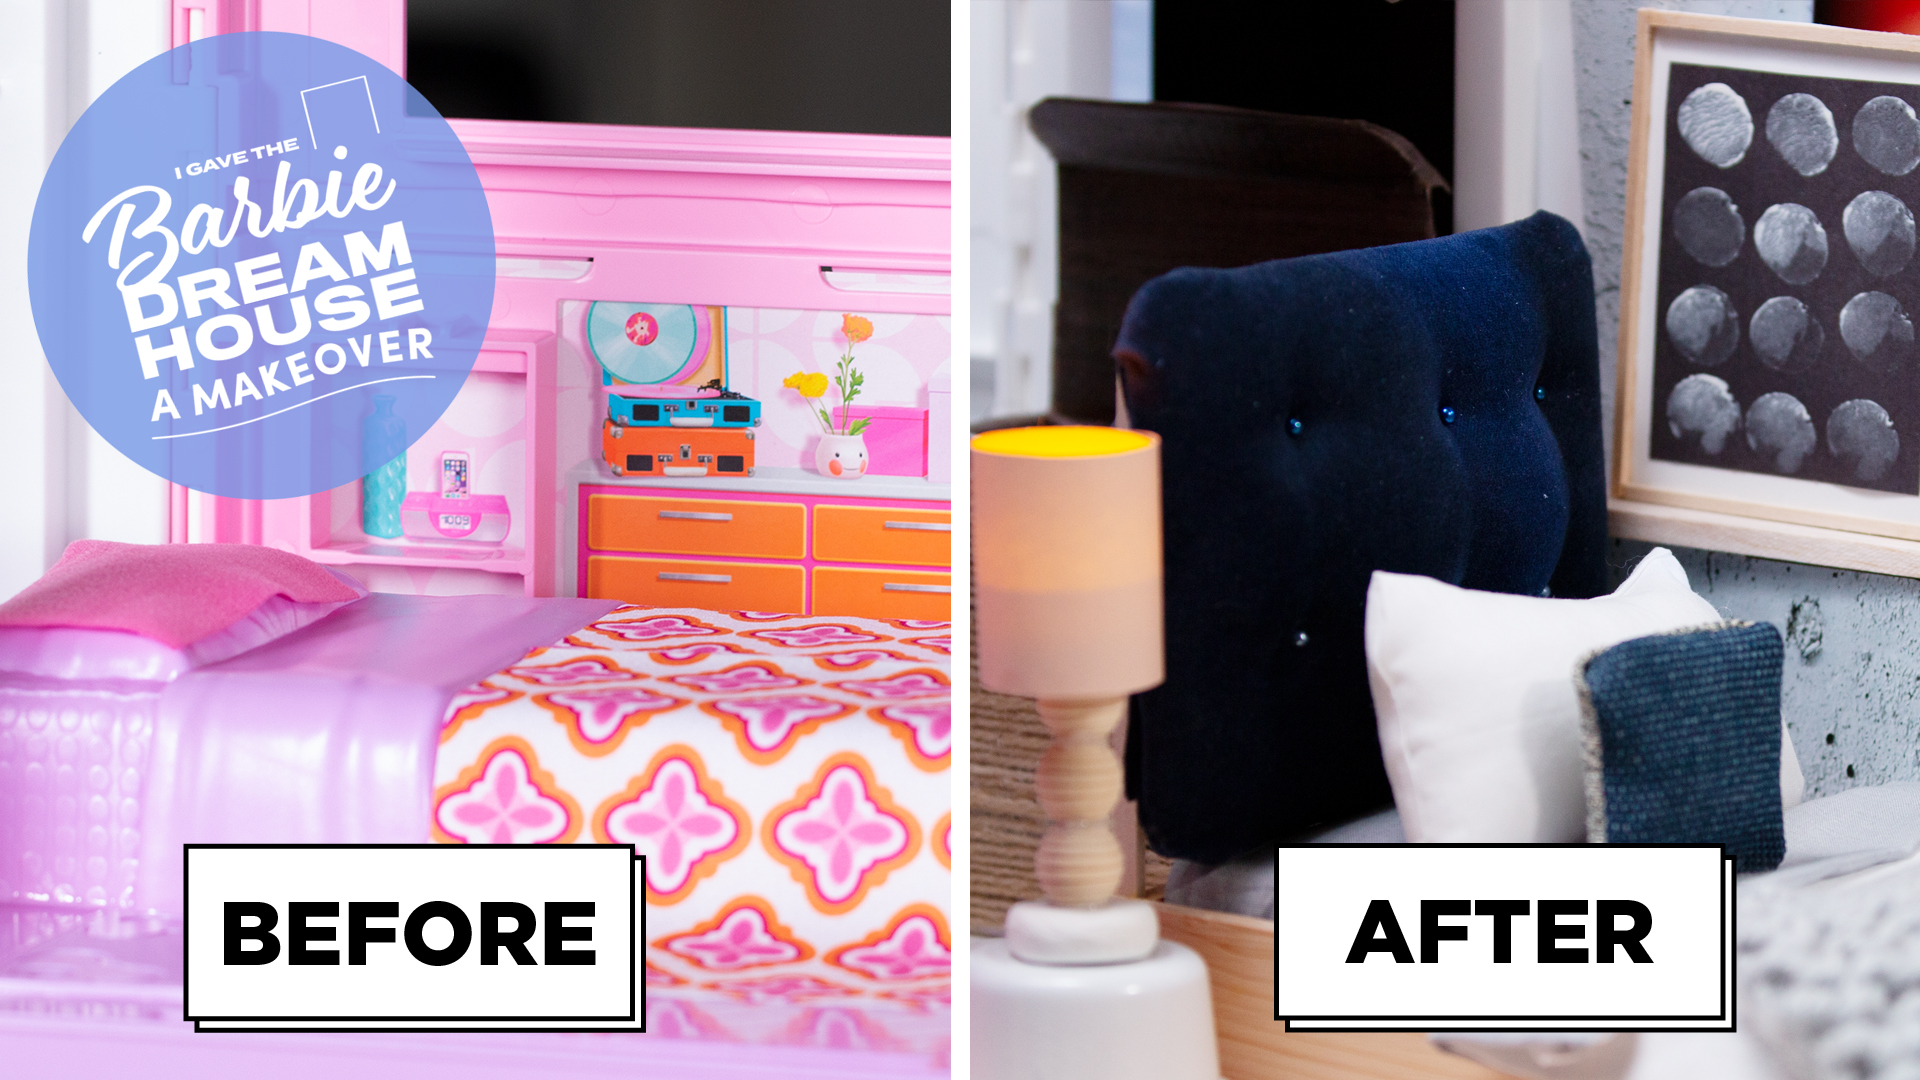 I Gave The Barbie DreamHouse A Bedroom Makeover -